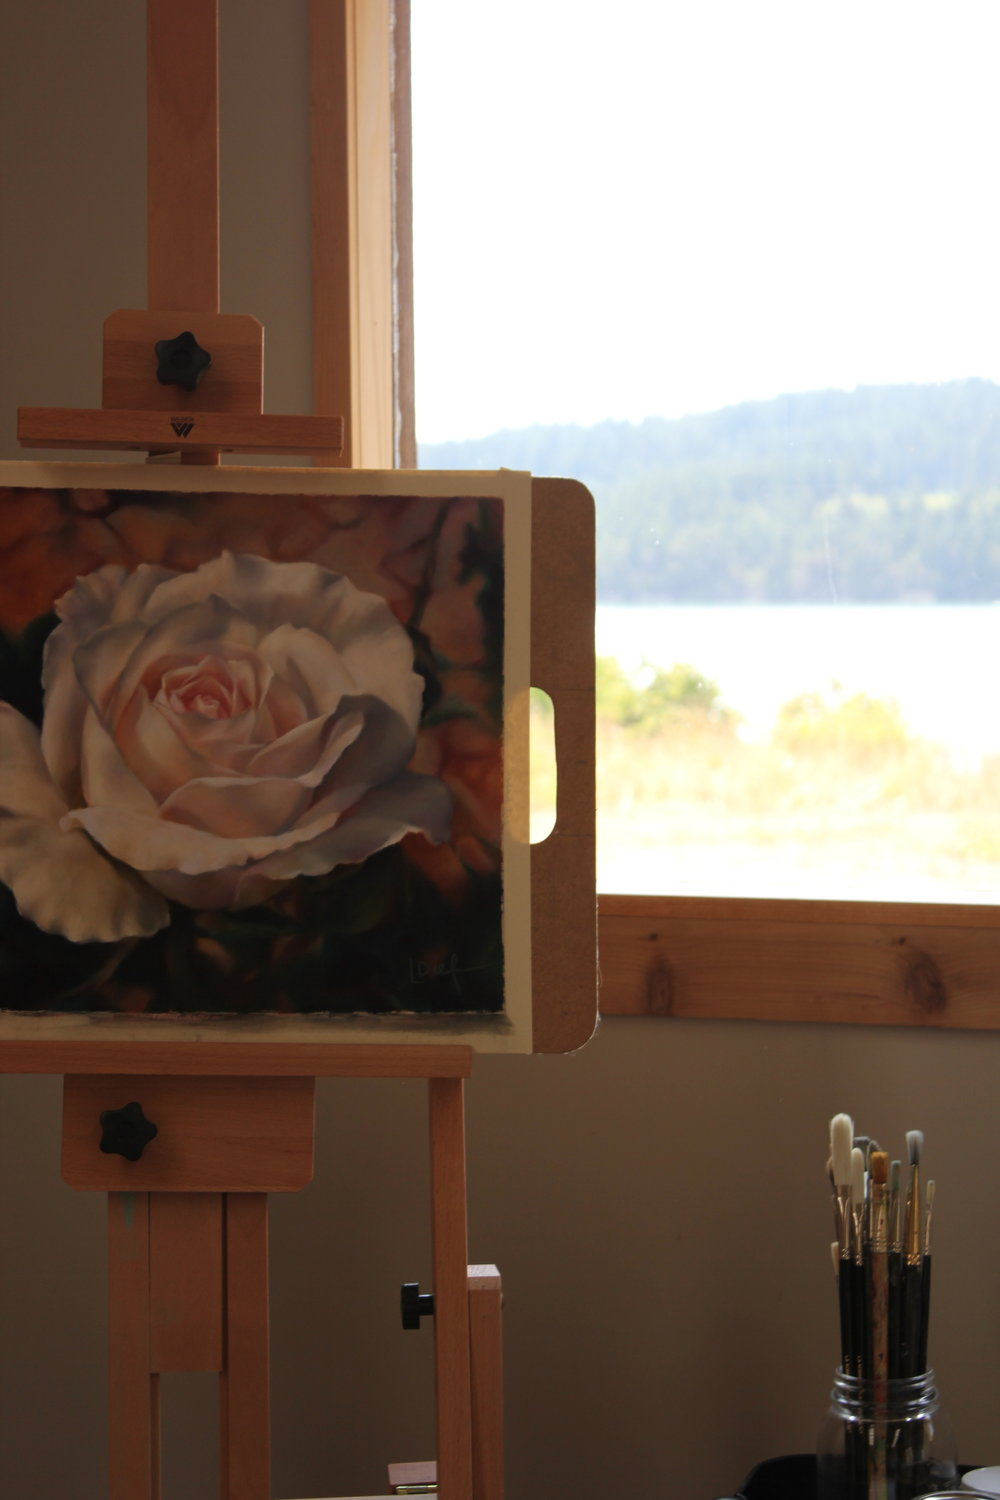 l dief rose oil painting at plum nelli